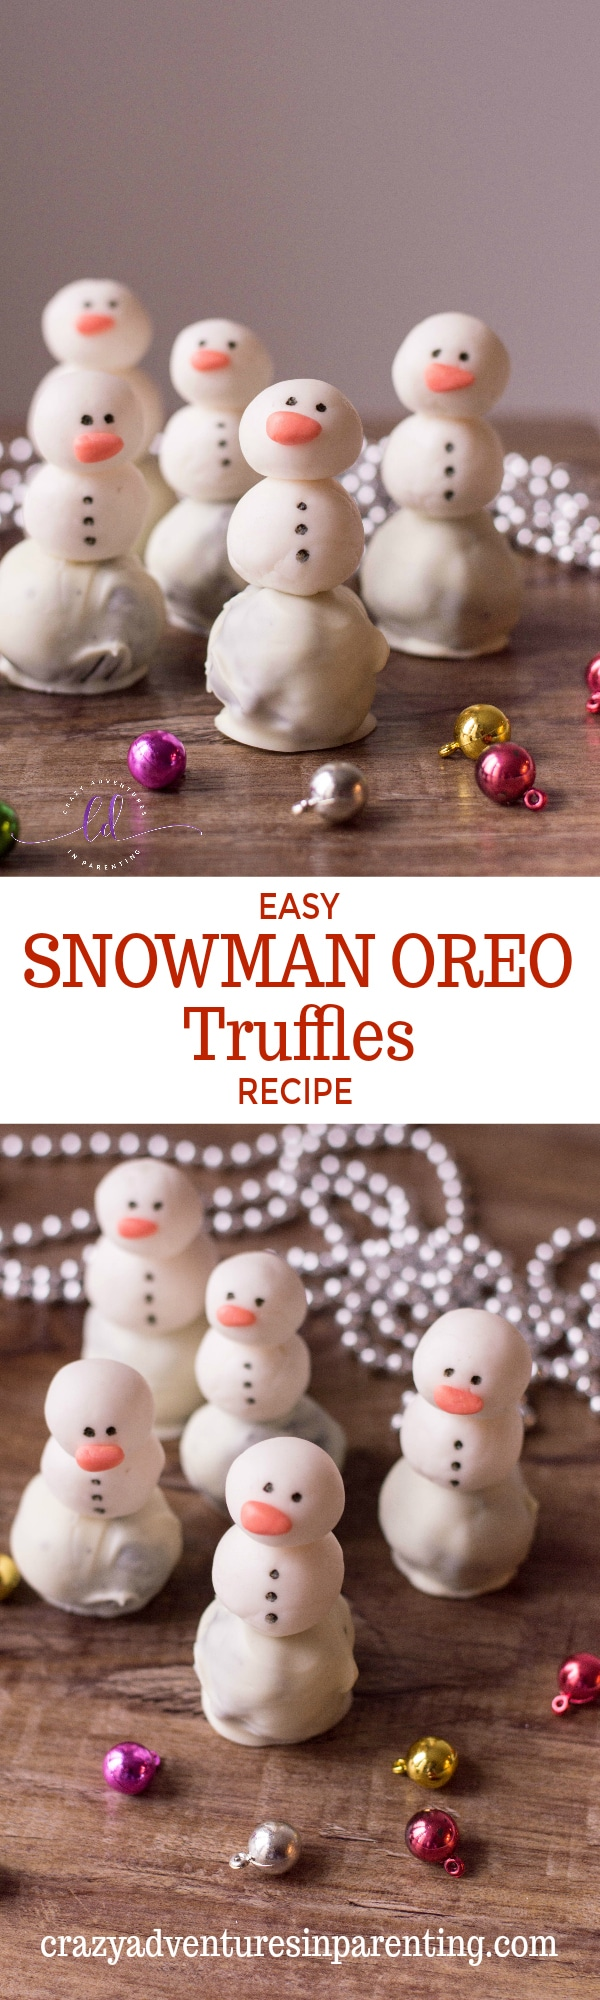 Easy Snowman Oreo Truffles Recipe